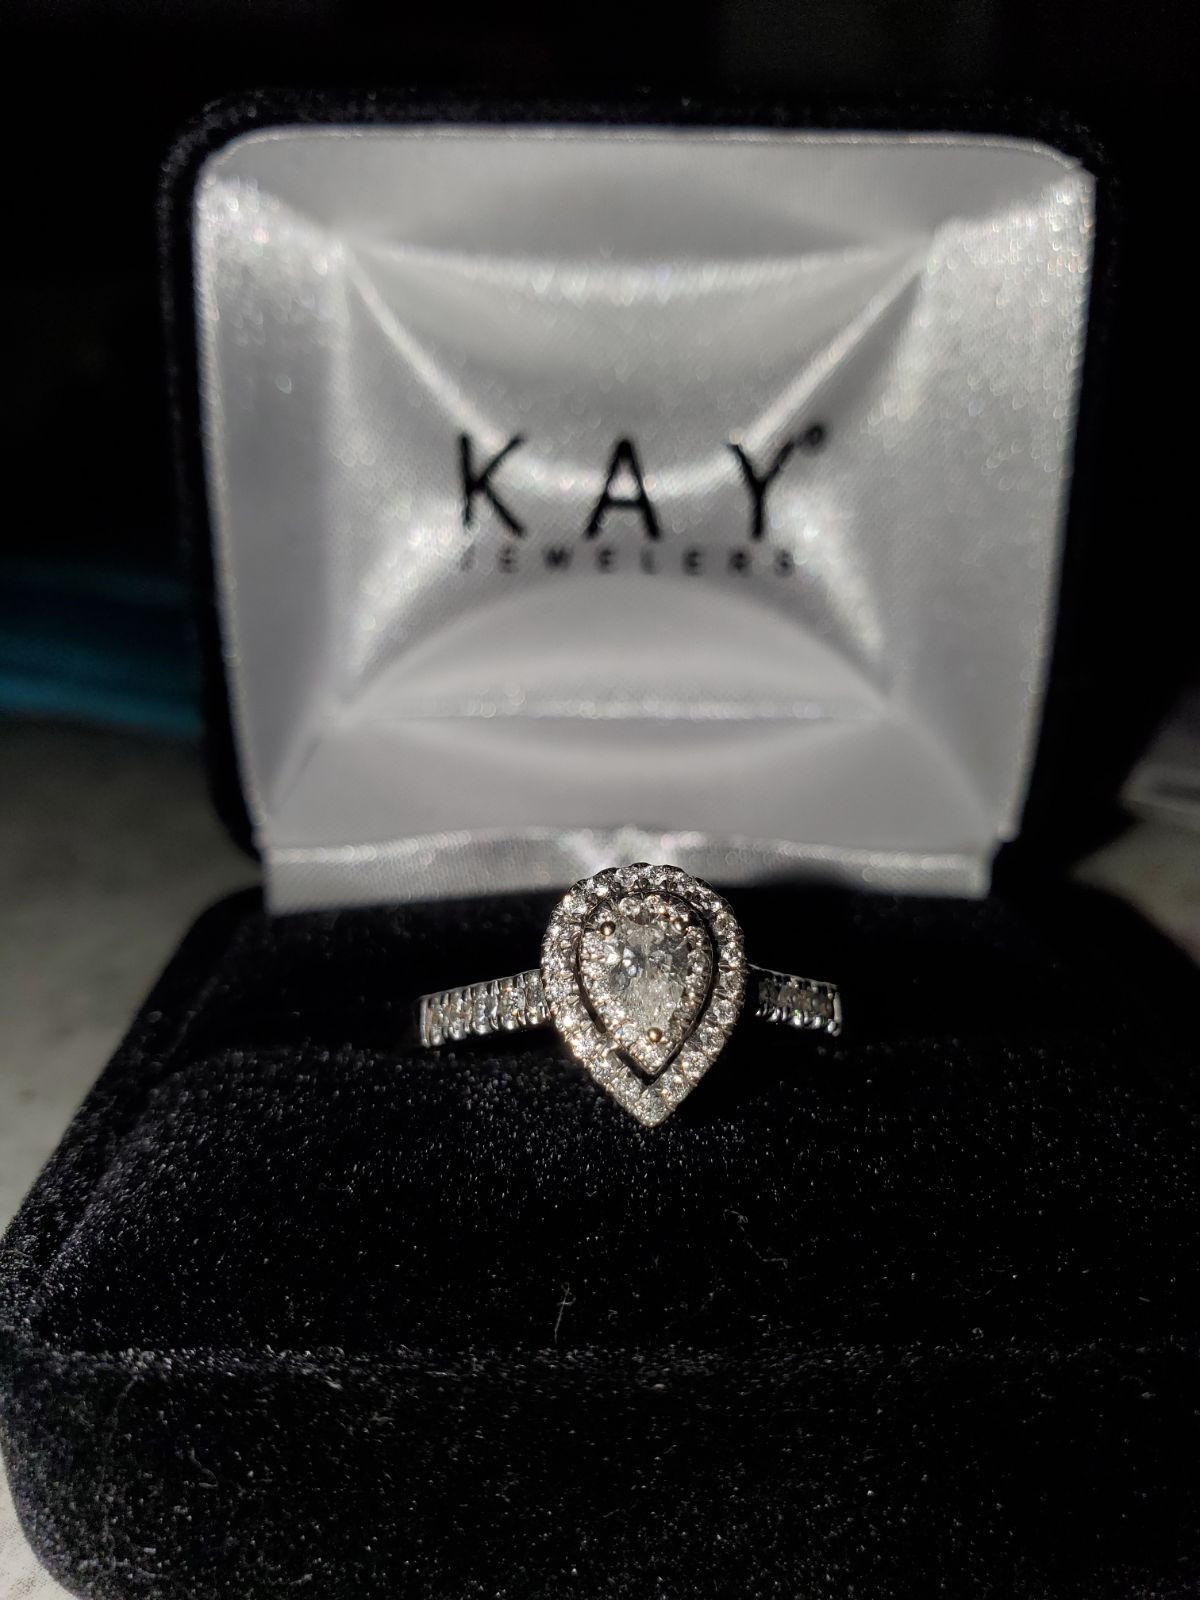 14k White Gold With 1 5 Carat Pear Shaped Diamond With Smaller Diamonds Surrounding Size 10 Kay Jewelers Rings Pear Shaped Diamond Rings